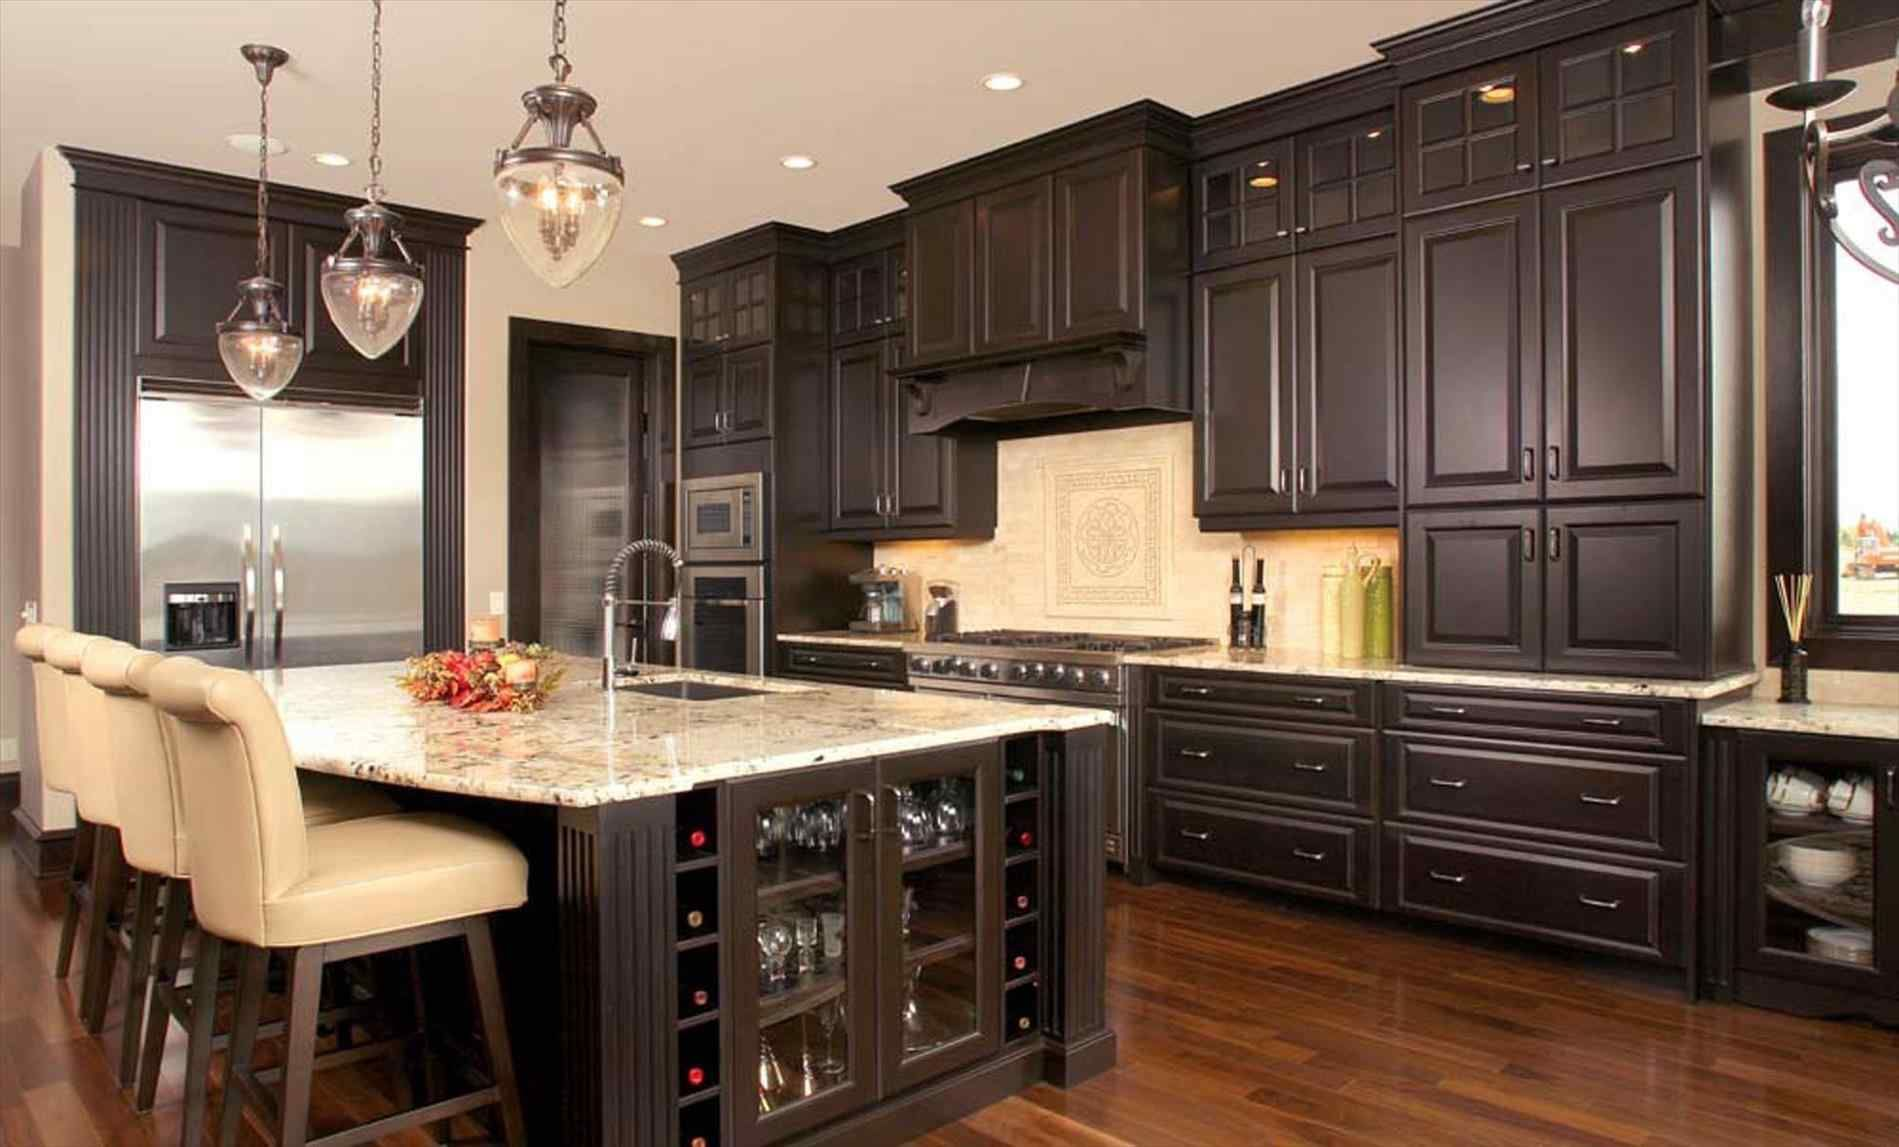 Stunning Kitchen Cabinet Color Trends 2018 & Stunning Kitchen Cabinet Color Trends 2018 | kitchen | Pinterest ...